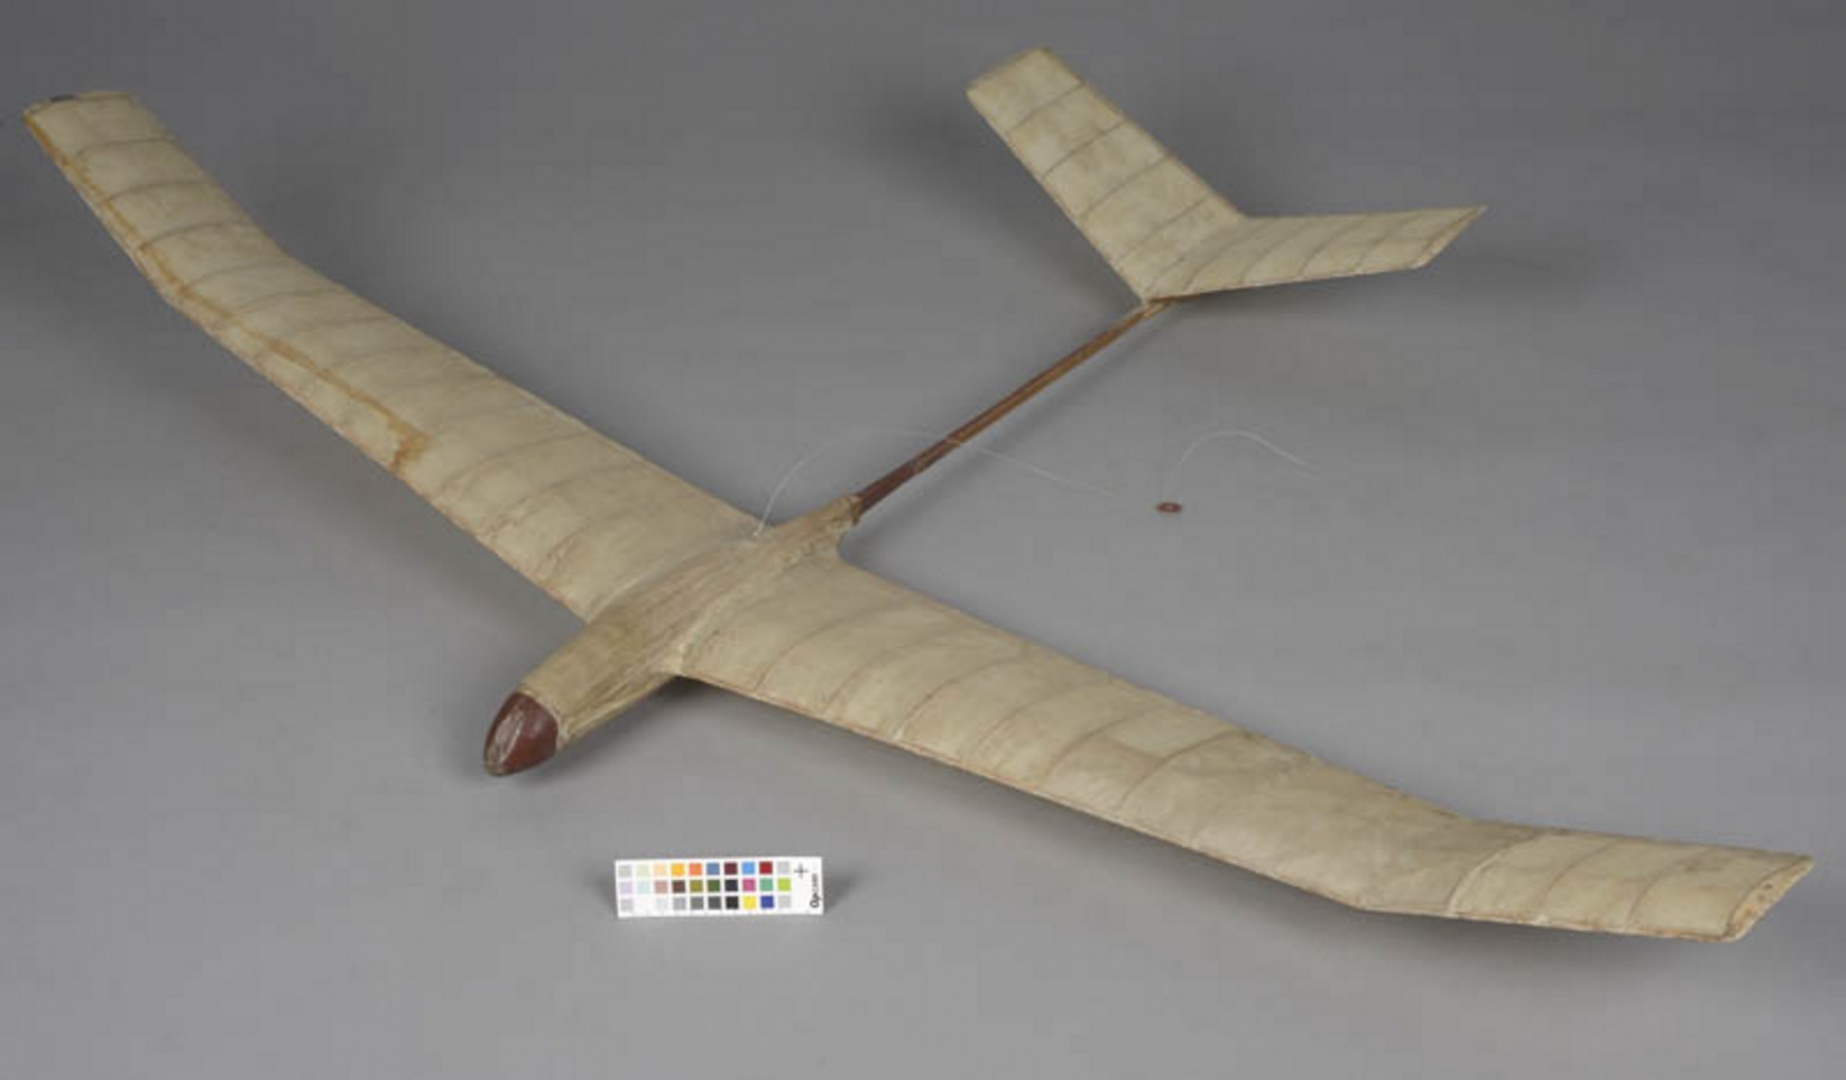 ill 17. Model plane 2 after conservation